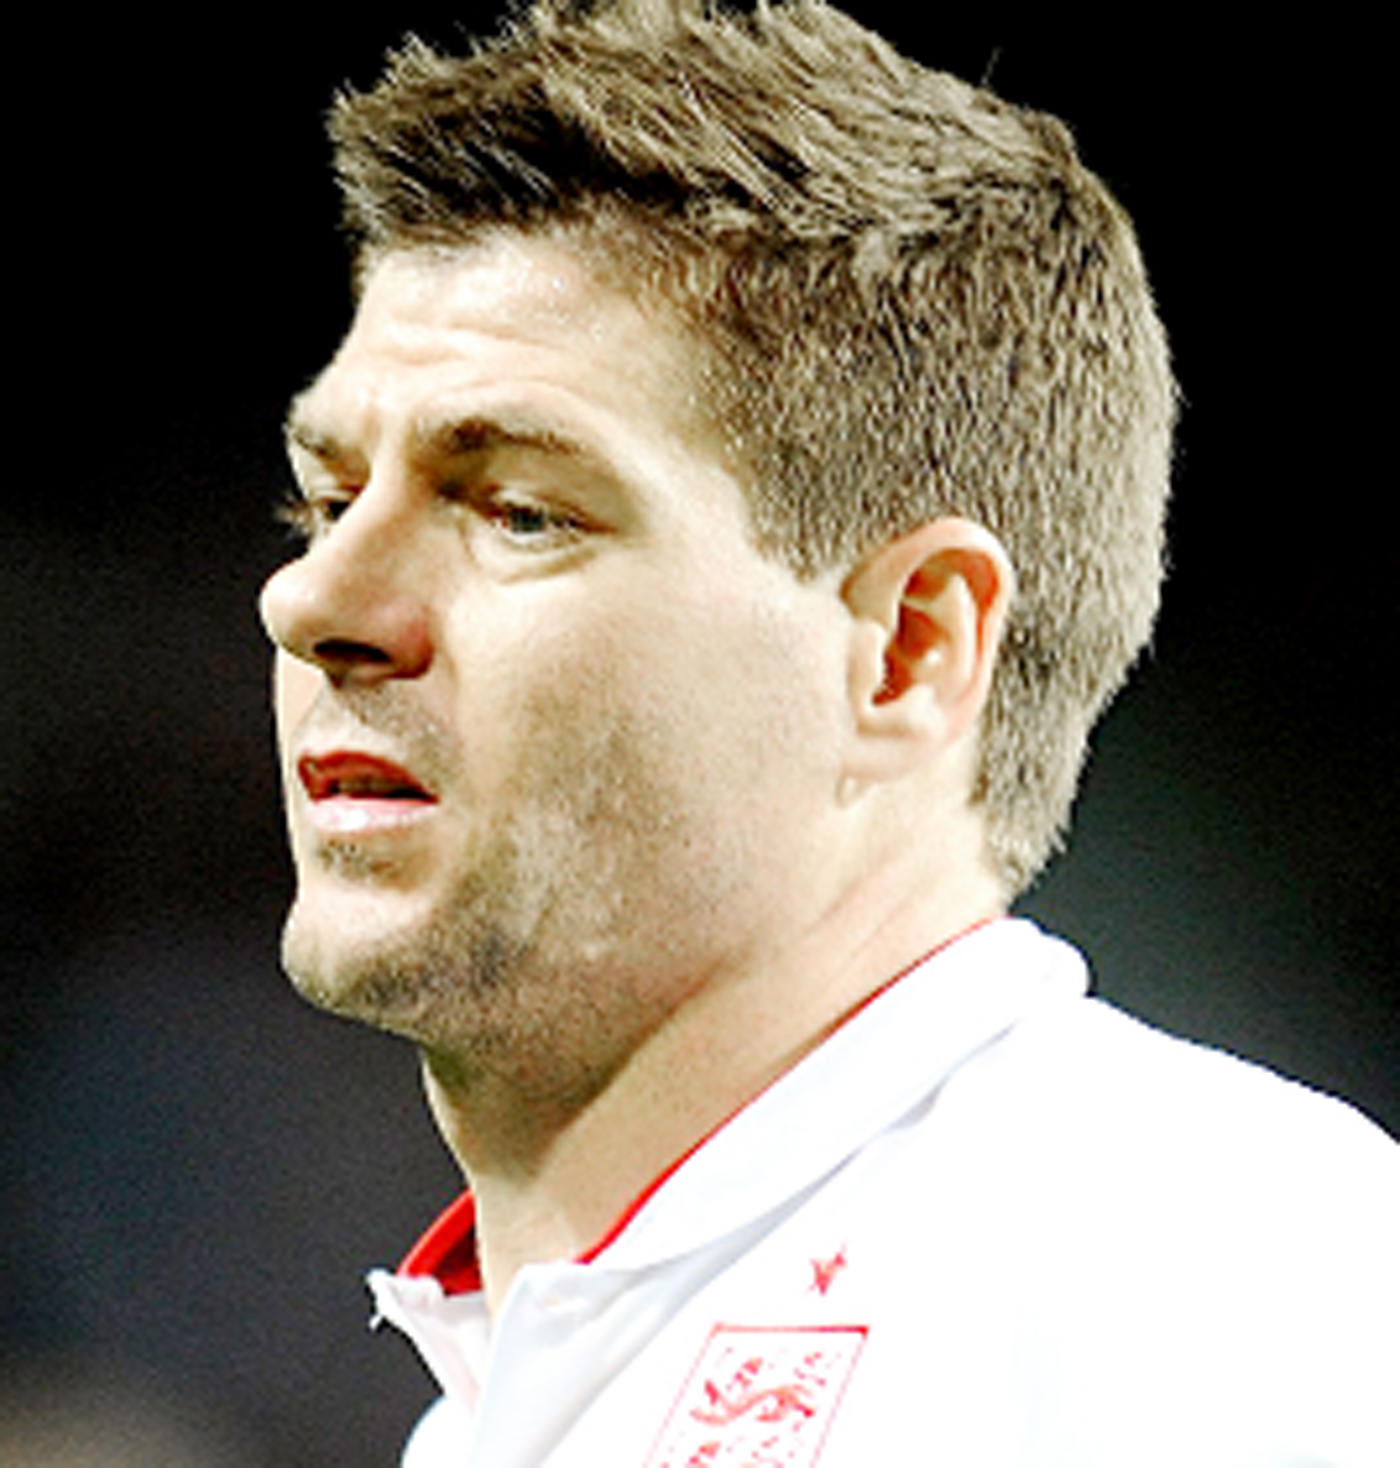 No concern over Gerrard